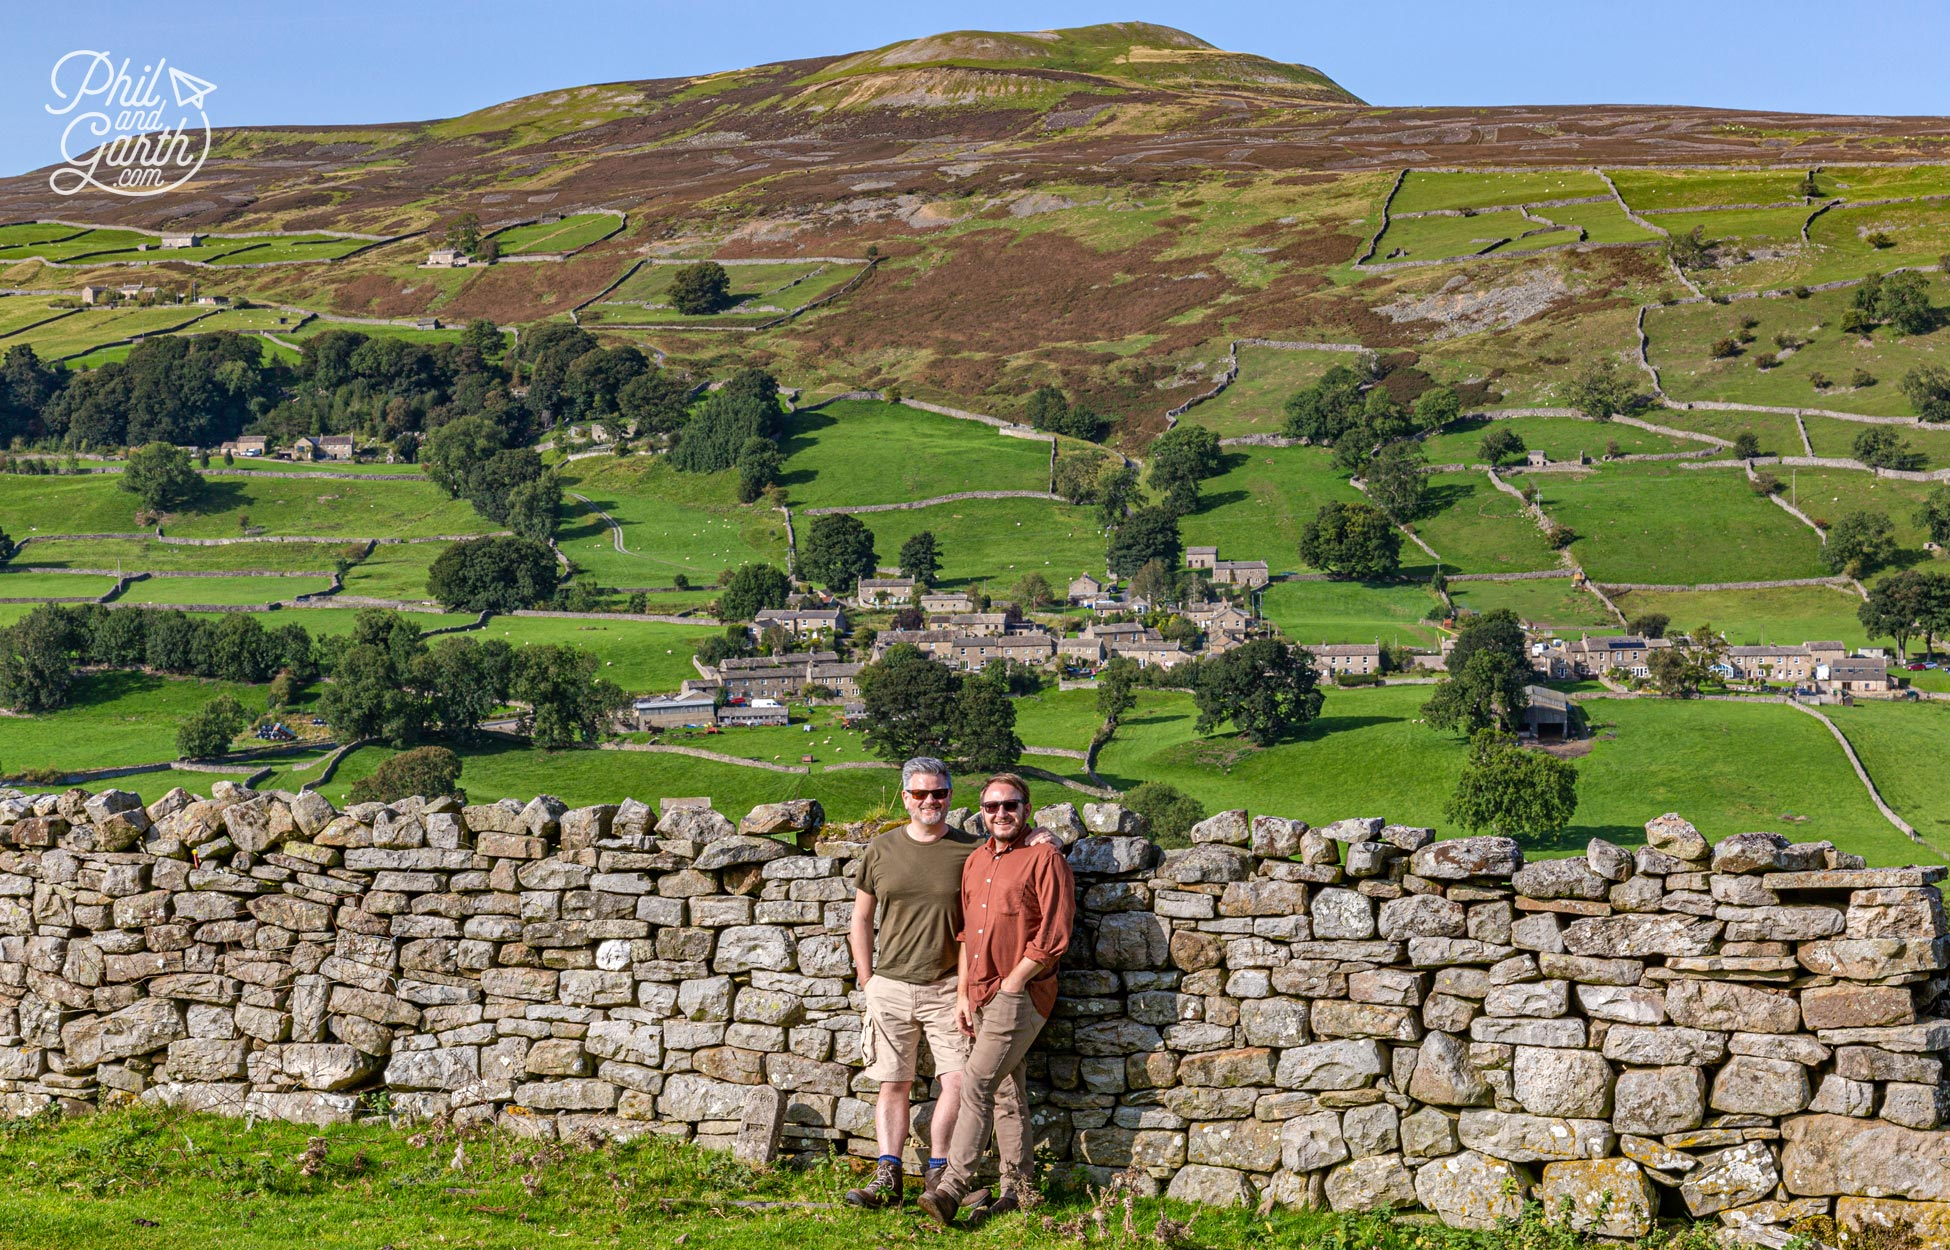 Phil and Garth's Top 5 Yorkshire Dales National Park Tips